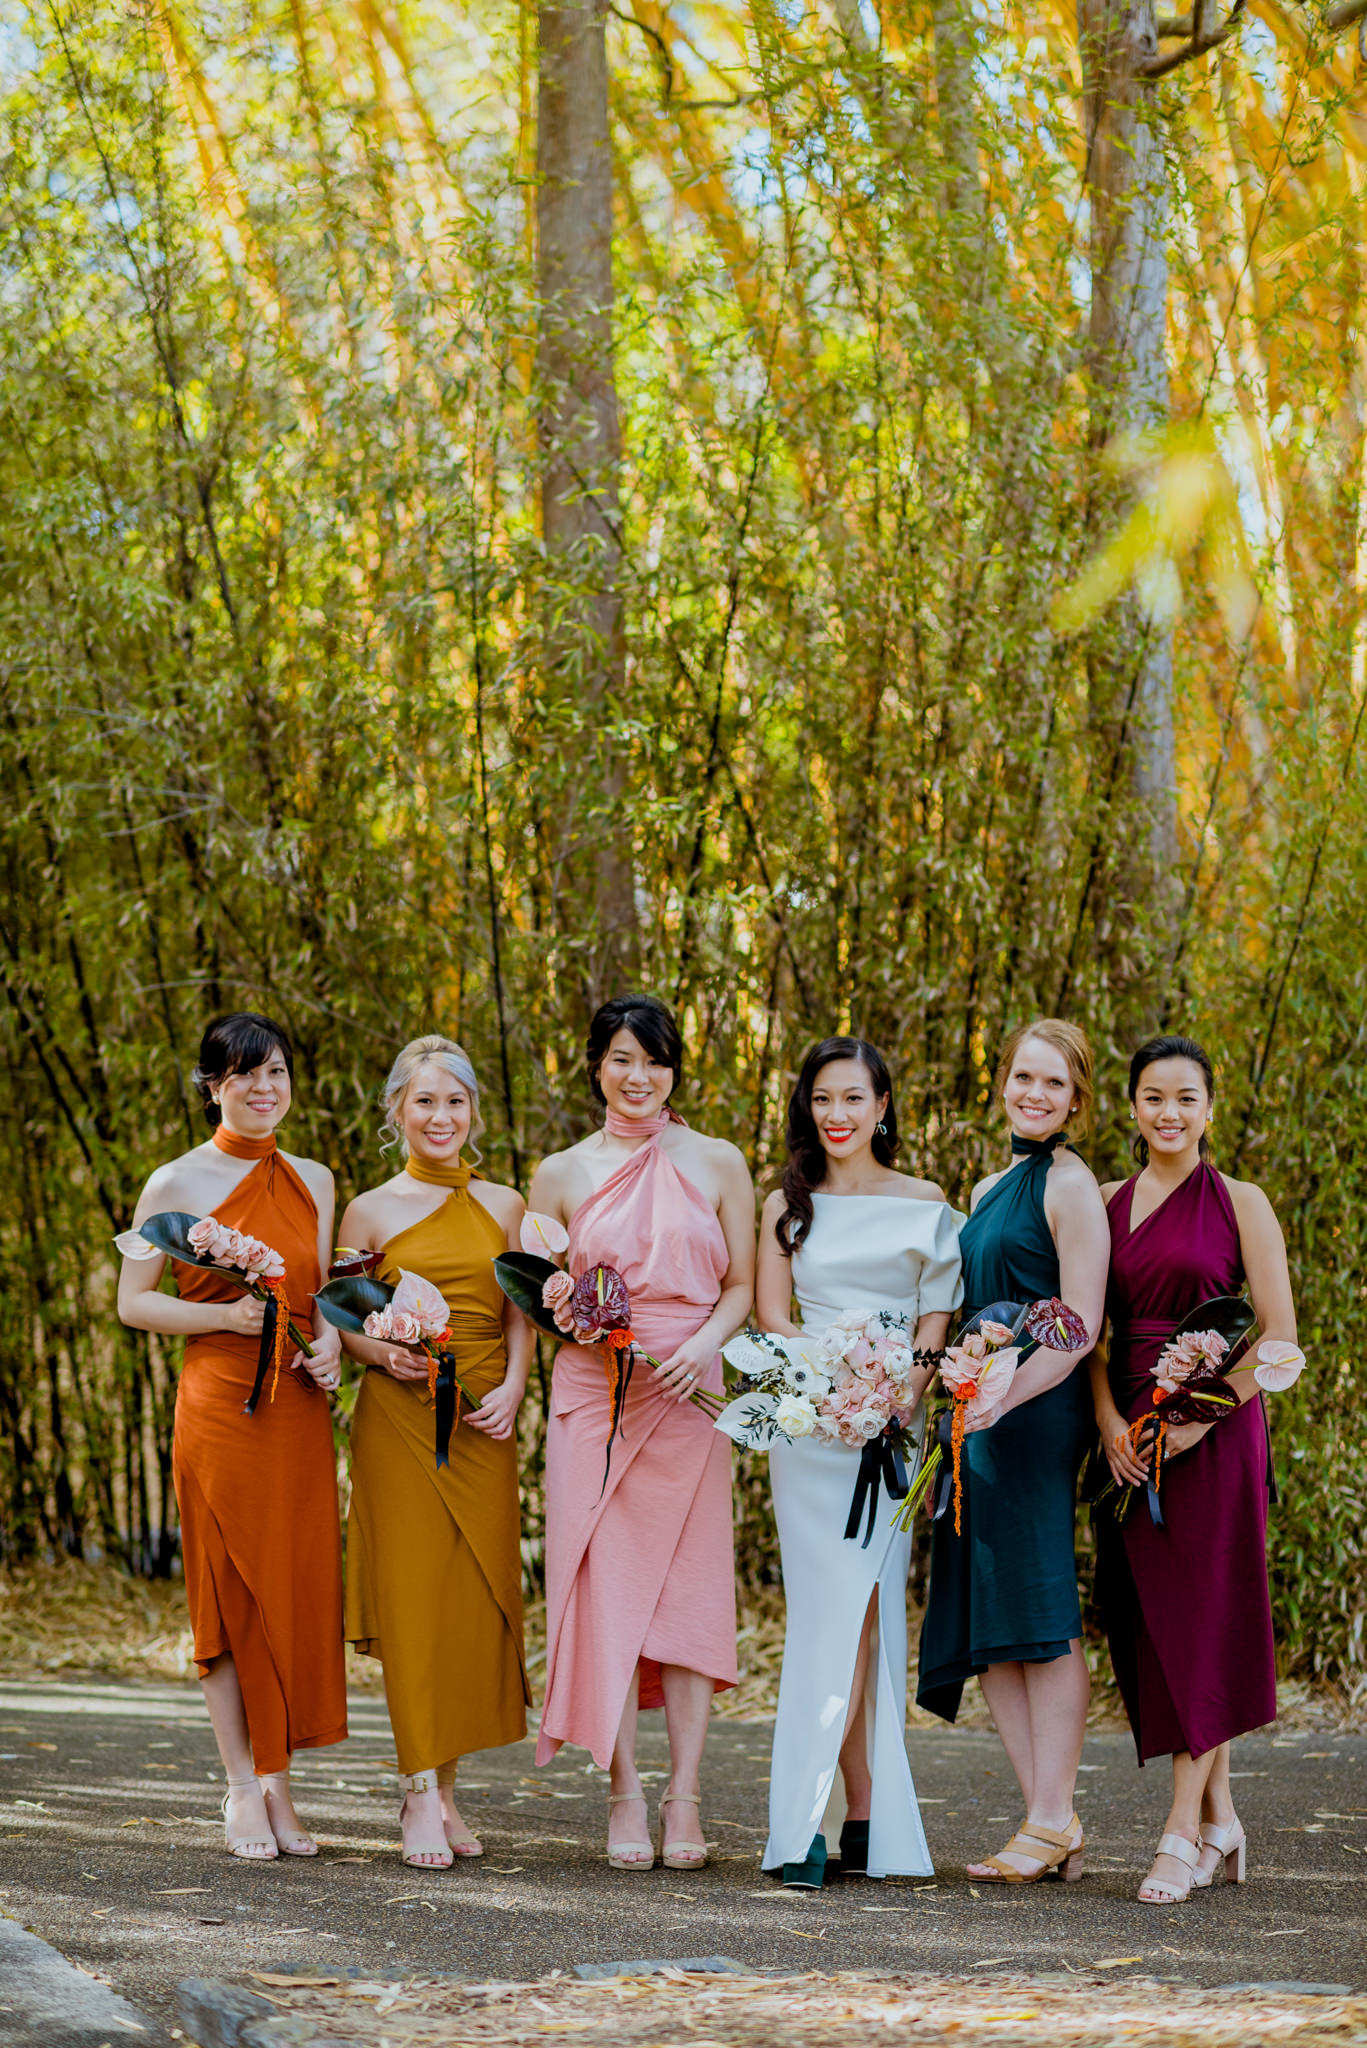 A bridal party in colourful dresses stand in front of bamboo stalks